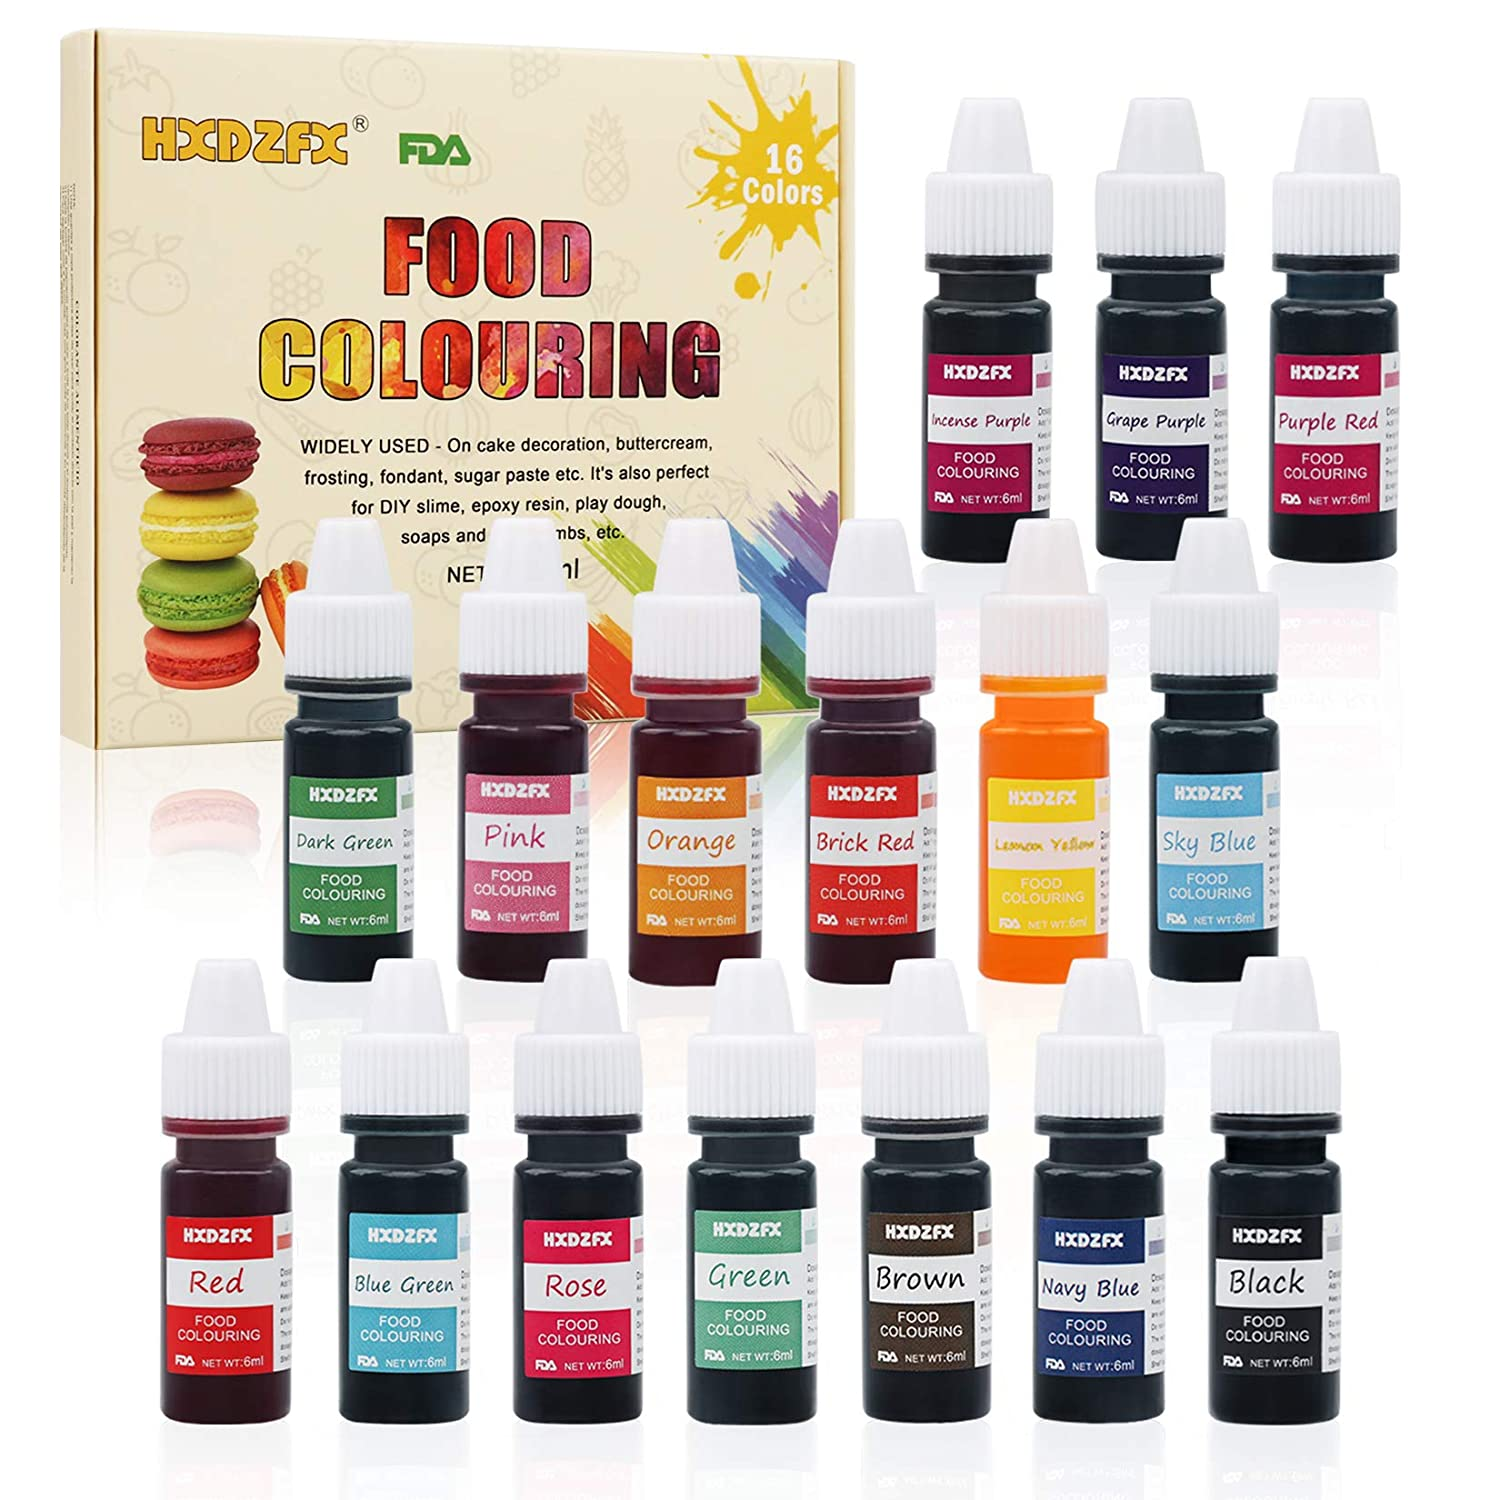 Food Coloring - 16 Color Rainbow Fondant Cake Food Coloring Set for Baking,Decorating,Icing and Cooking - neon Liquid Food Color Dye for Slime Making Kit and DIY Crafts.25 fl.oz.(6ml)Bottles